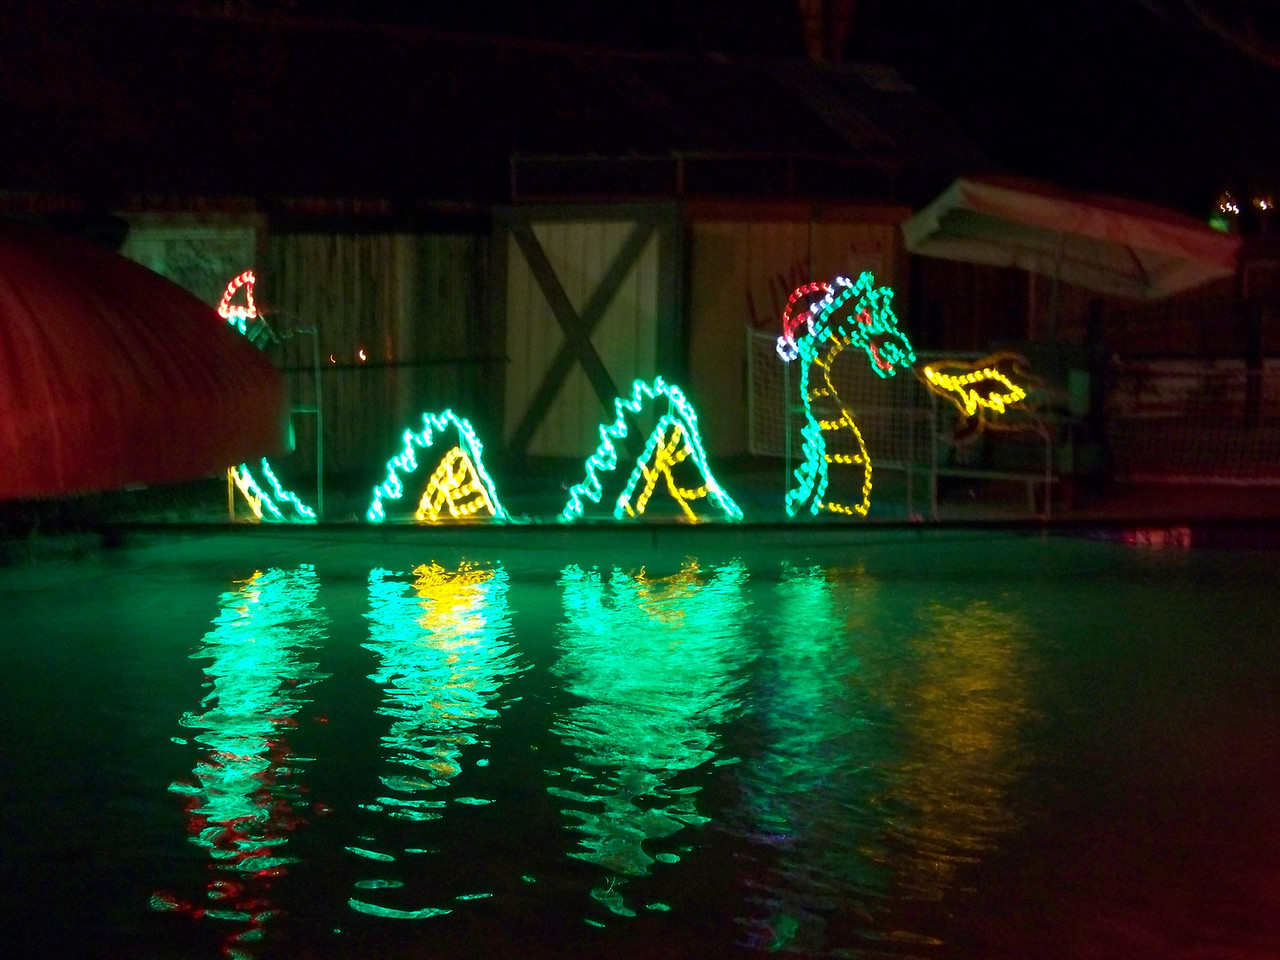 And this Christmas sea serpent (?!) bids us farewell from Schlitterbahn.  I wound up enjoying this experience more than I expected.  For me, it was worth the $15.00 entry fee.<br /> [Schlitterbahn's Hill Country Christmas 2009]